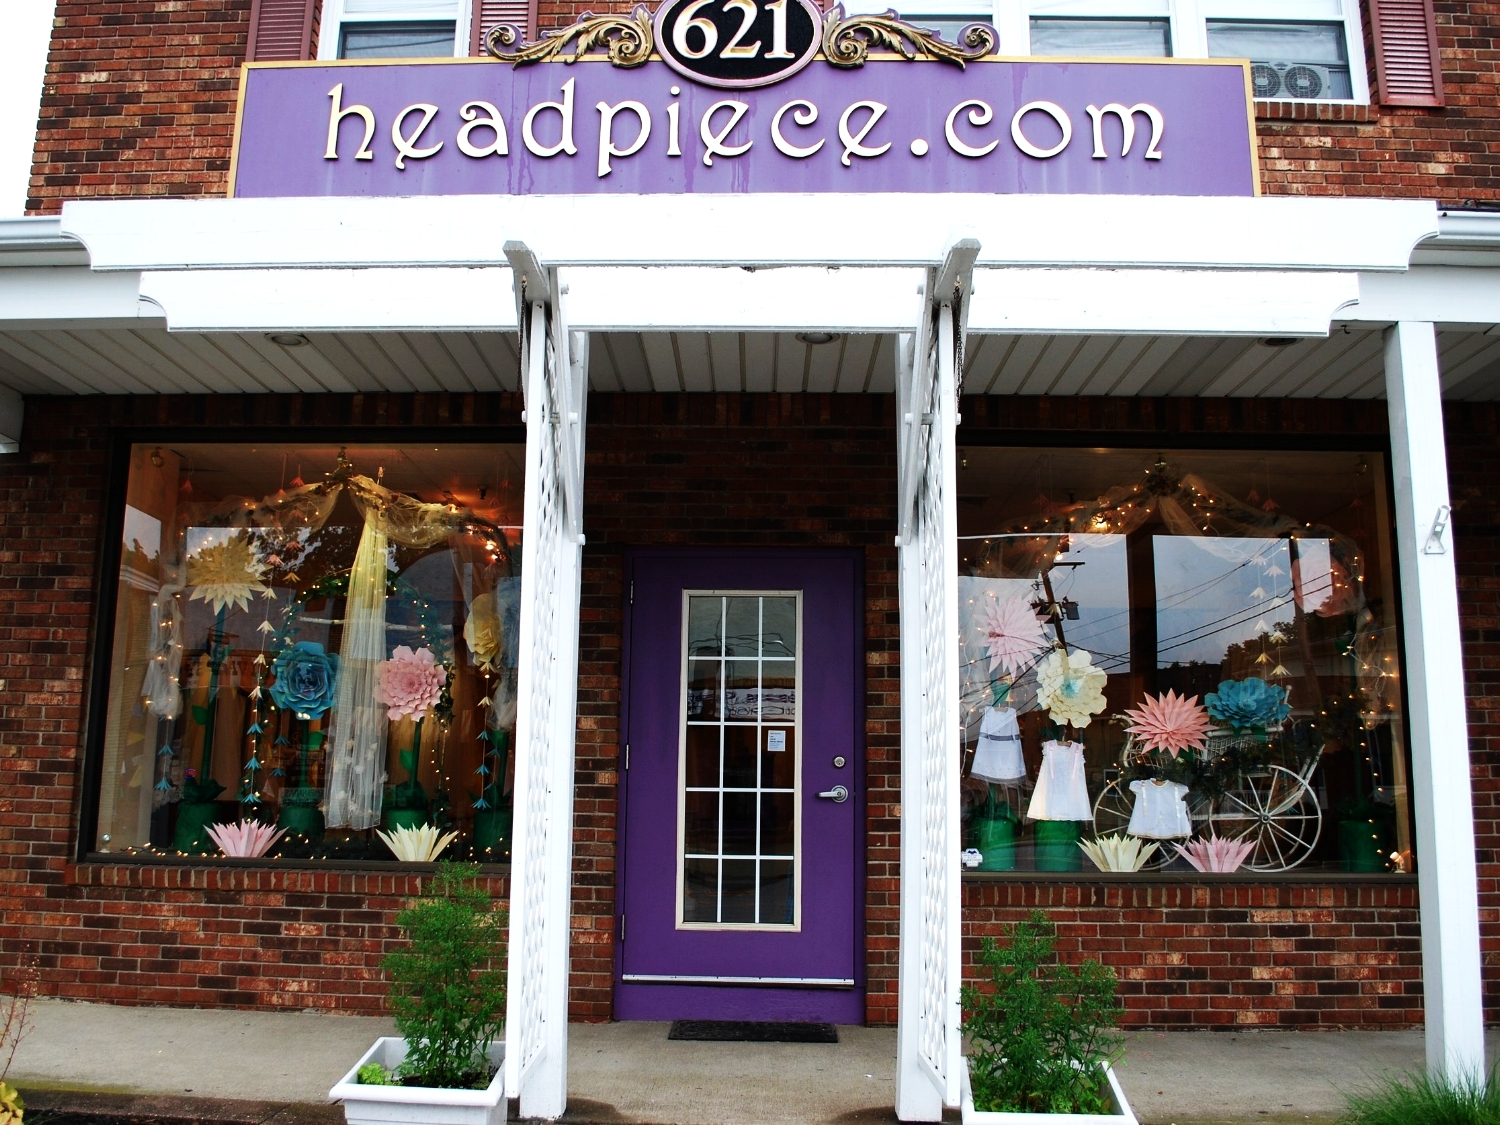 When I saw how incredible her talent was, I told her she could decorate our displays however she liked and granted her full artistic expression. Many people in town have stopped and taken photographs of her more than life size handmade paper flowers.